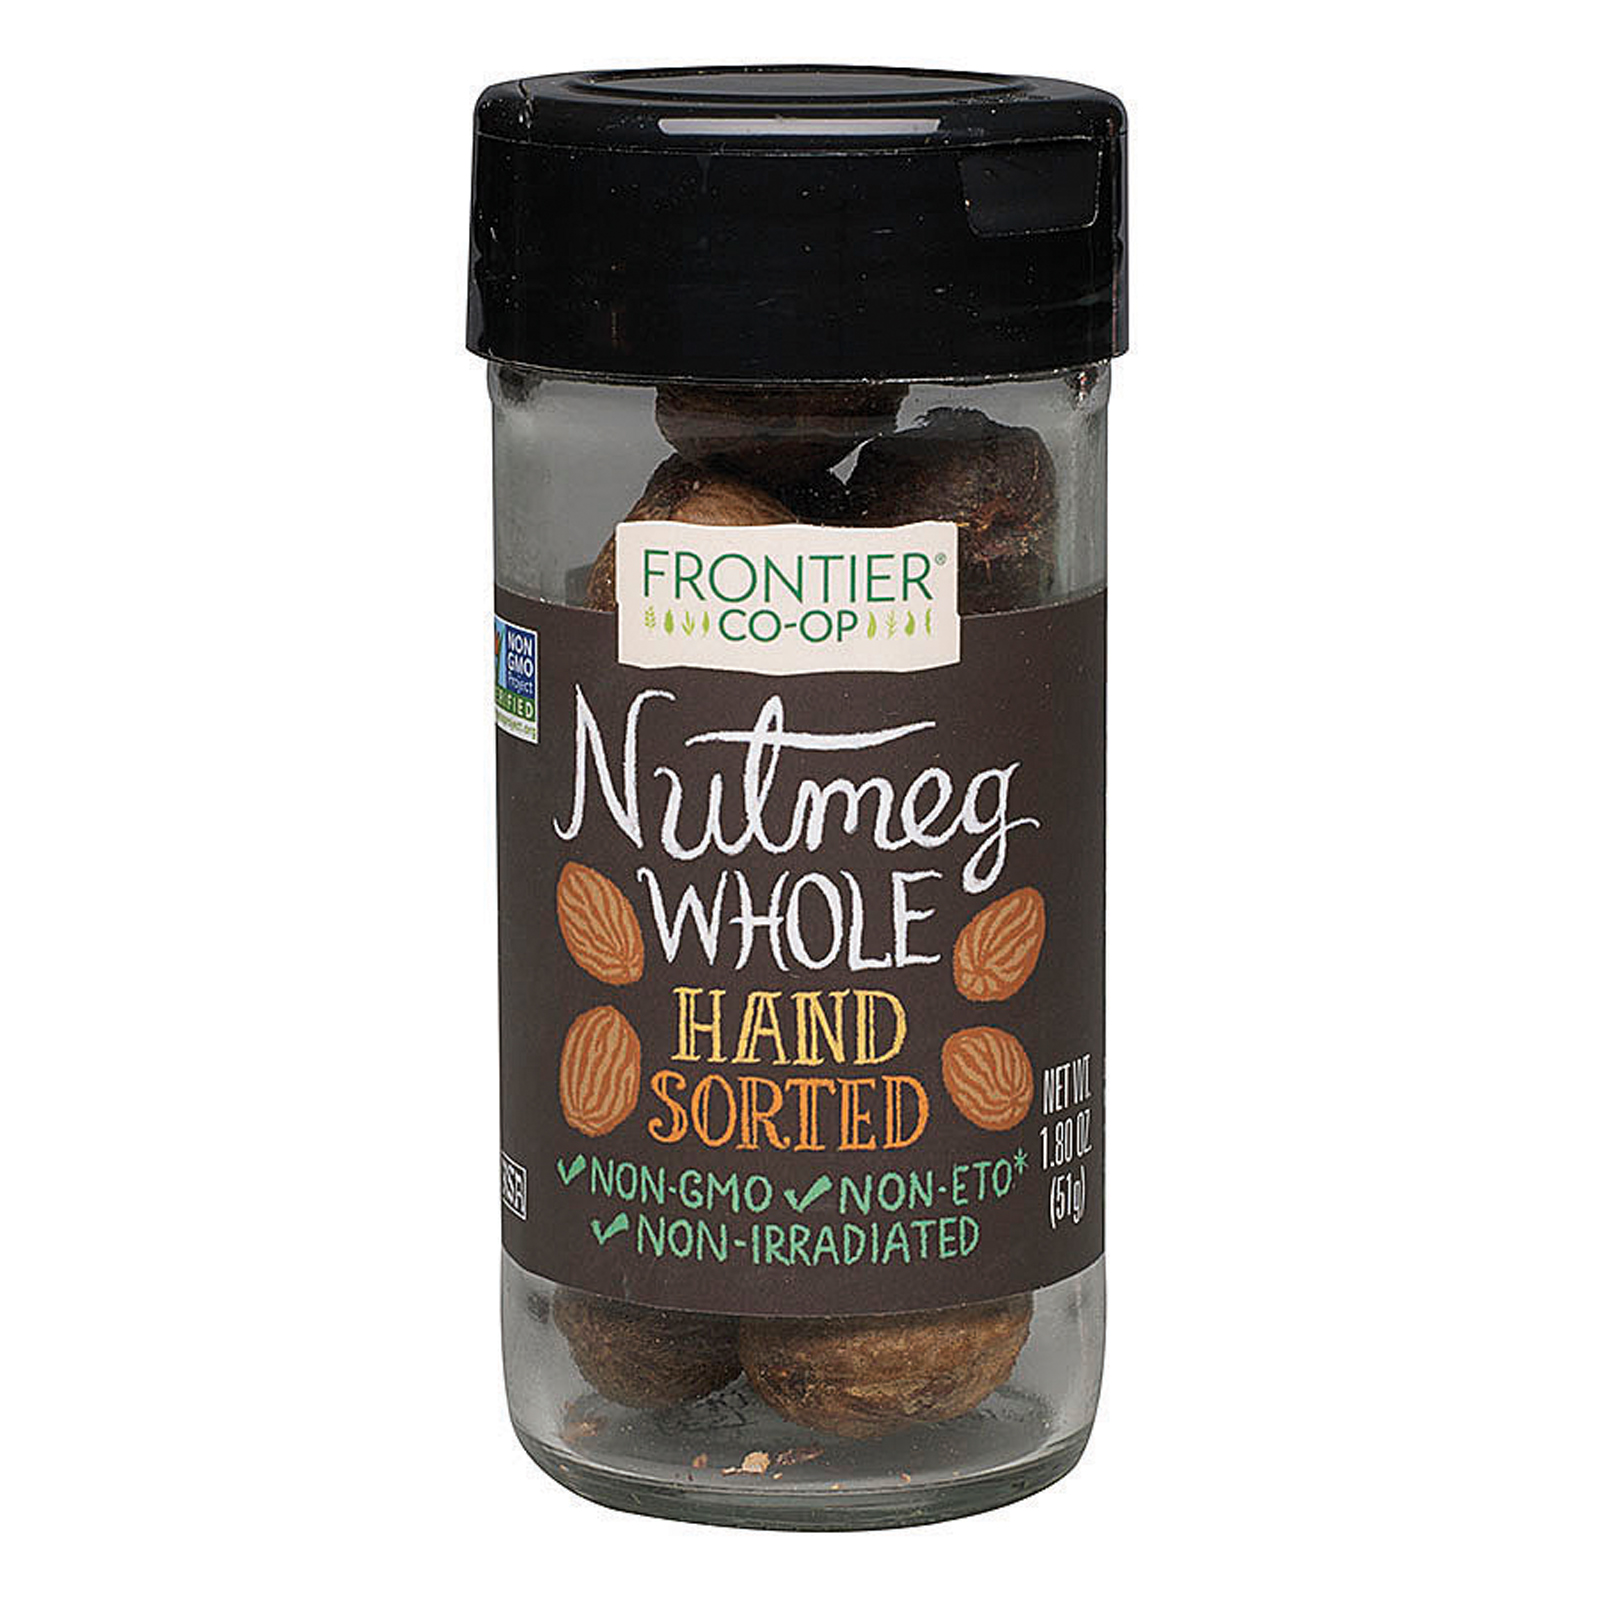 Frontier Herb Nutmeg Whole Hand Sorted Case of 12 1.8 oz. by